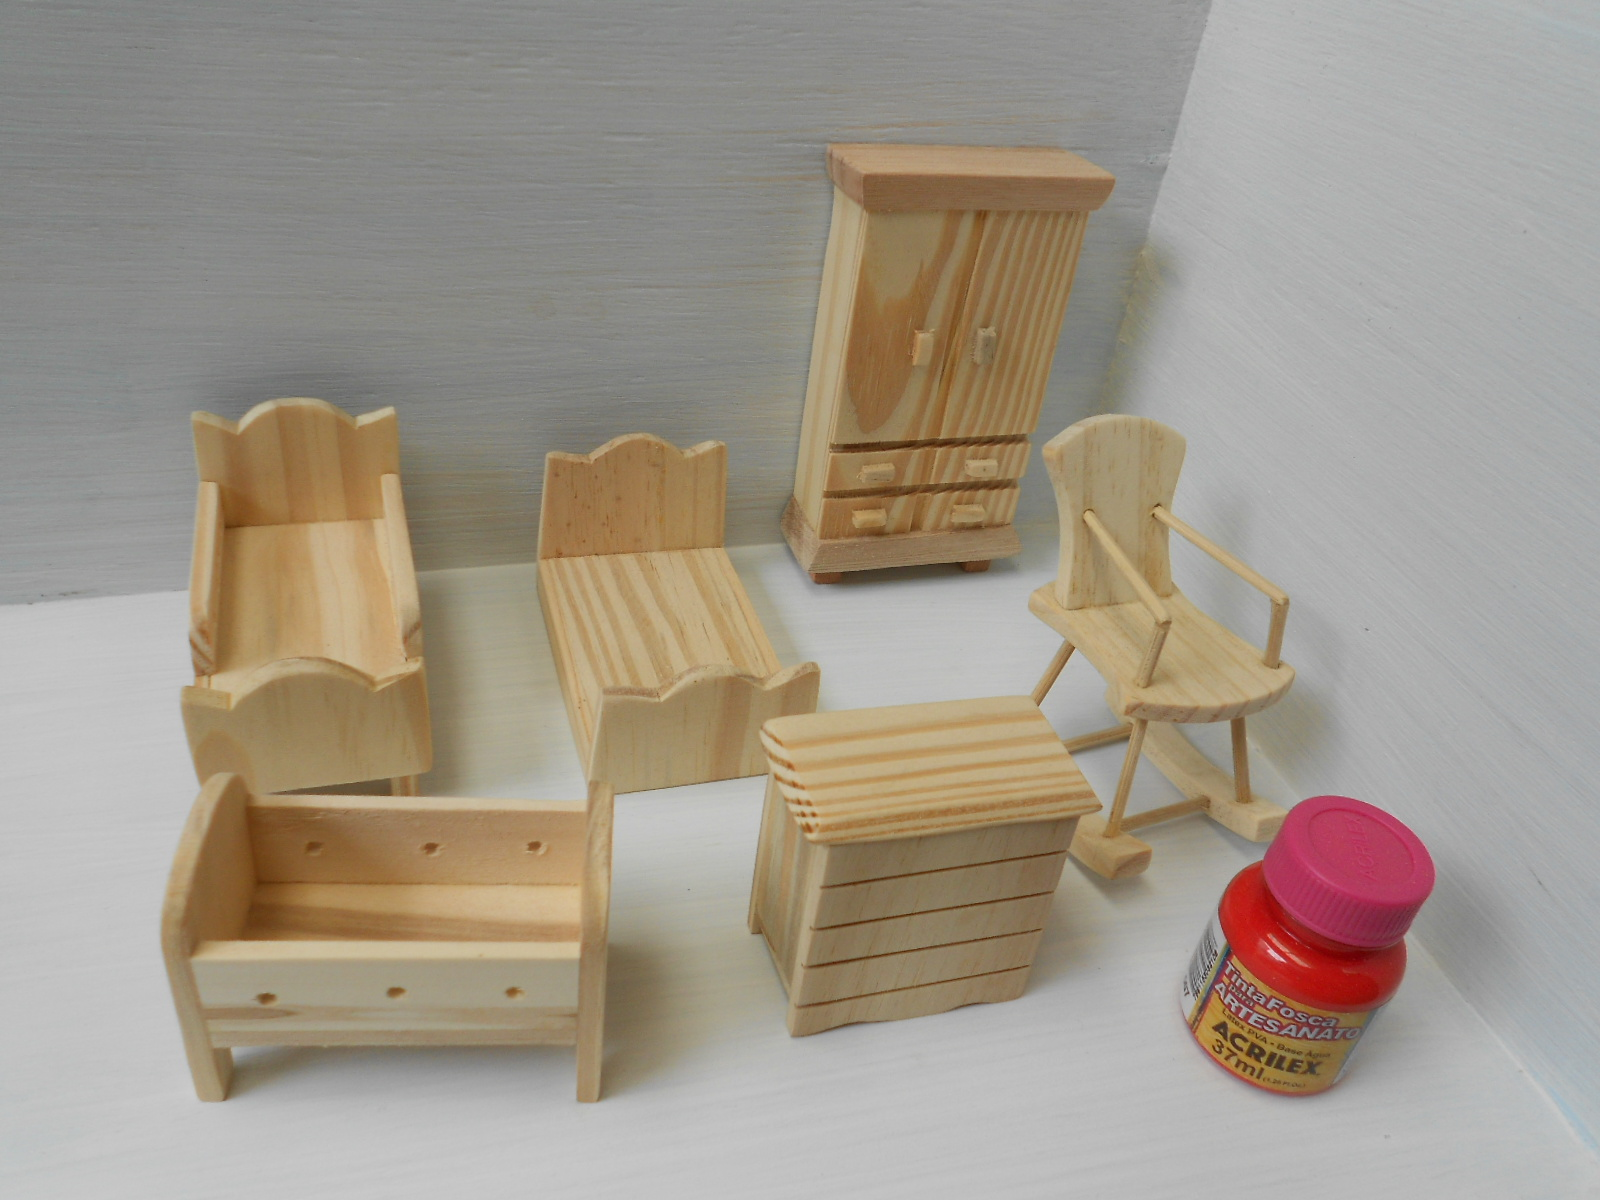 kit moveis miniaturas quarto pecas mini ambientes kit moveis  #9A314F 1600x1200